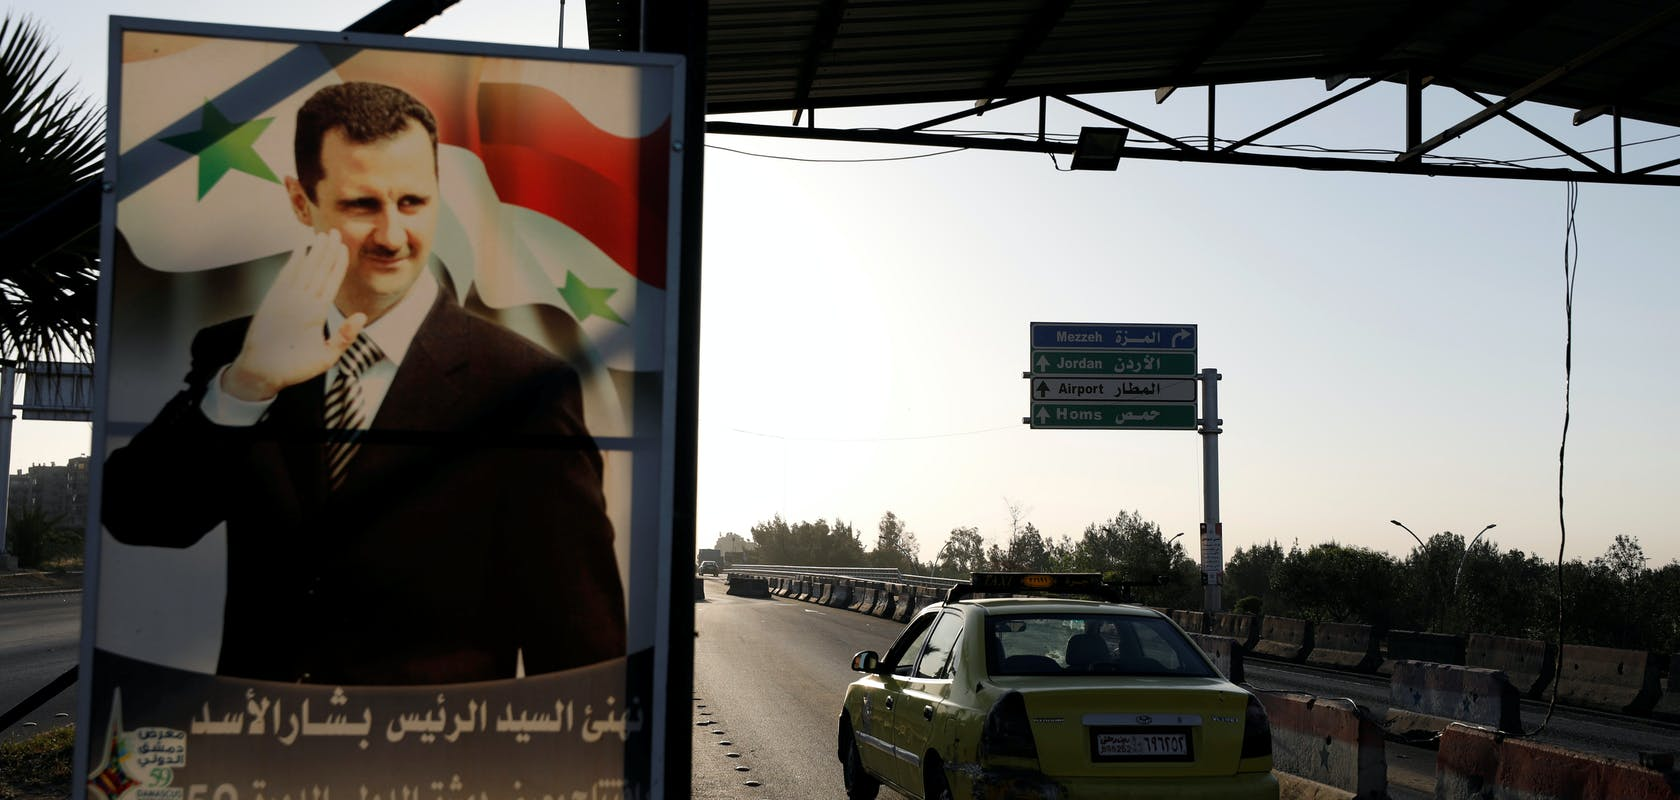 bbcb0d18-a9f4-469d-adeb-9736fb3655c9_A+poster+of+Syrian+President+Bashar+al-Assad+is+seen+on+the+main+road+to+the+airport+in+Damascus.JPG?auto=compress,format&rect=0,312,4918,2342&w=1680&h=800